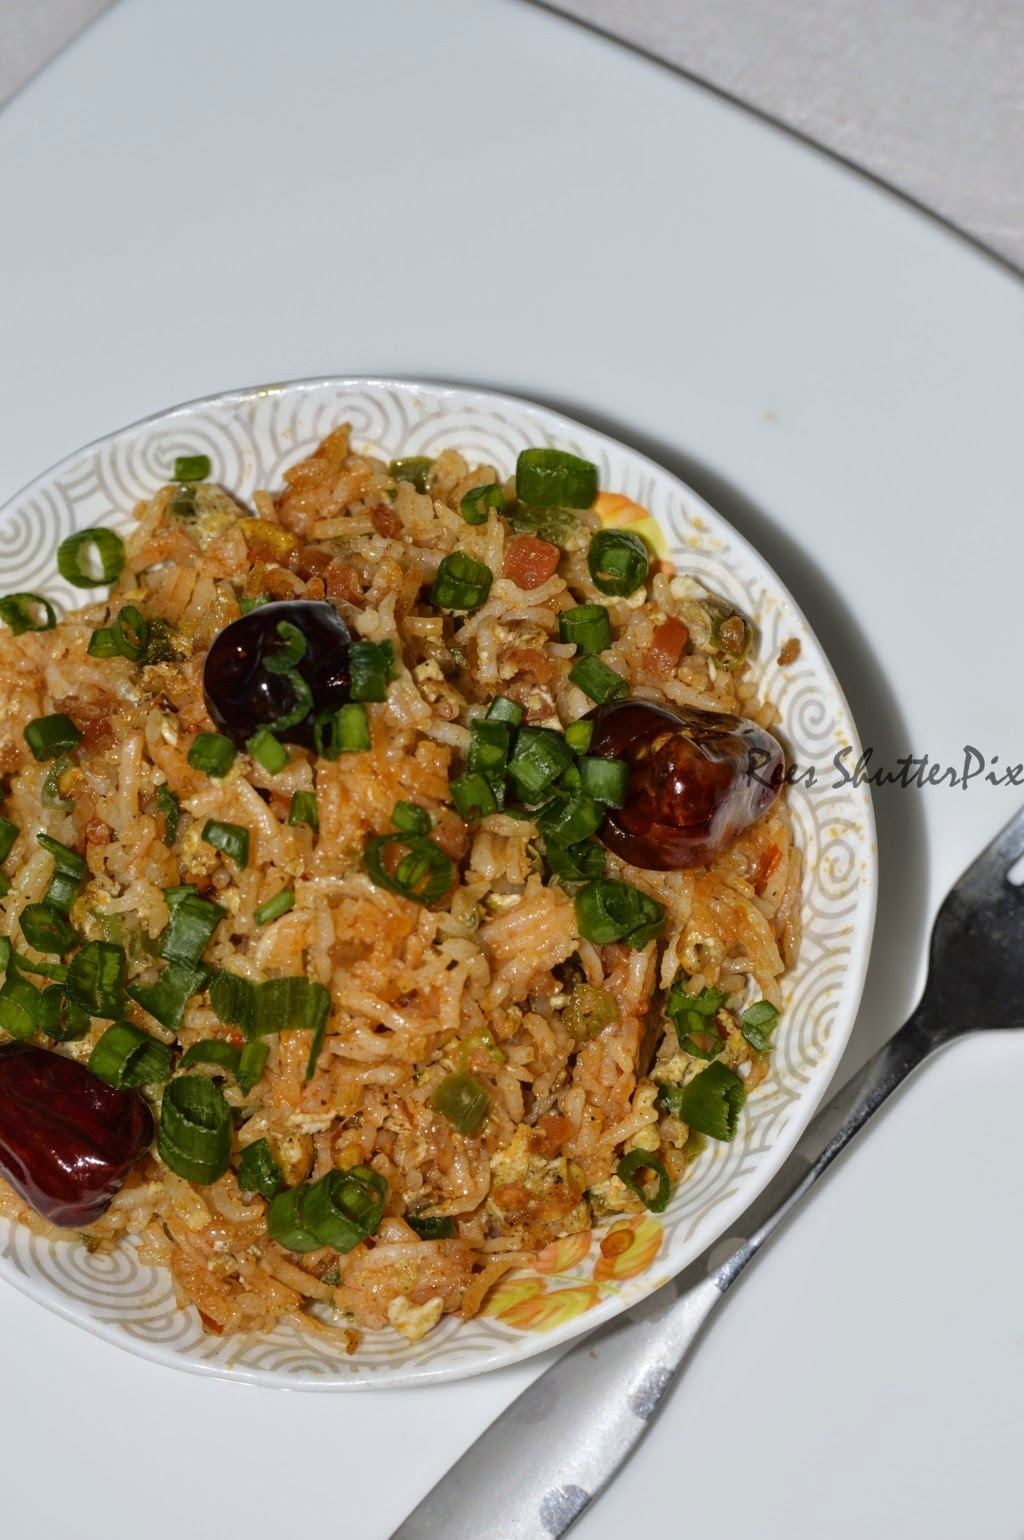 indian recipes, south indian recipes, chinese recipes, egg recipes, recipes, chinese food, simple chinese recipe,  fried rice recipes, easy egg fried rice recipe, schezwan egg fried rice, restaurant style chinese recipe